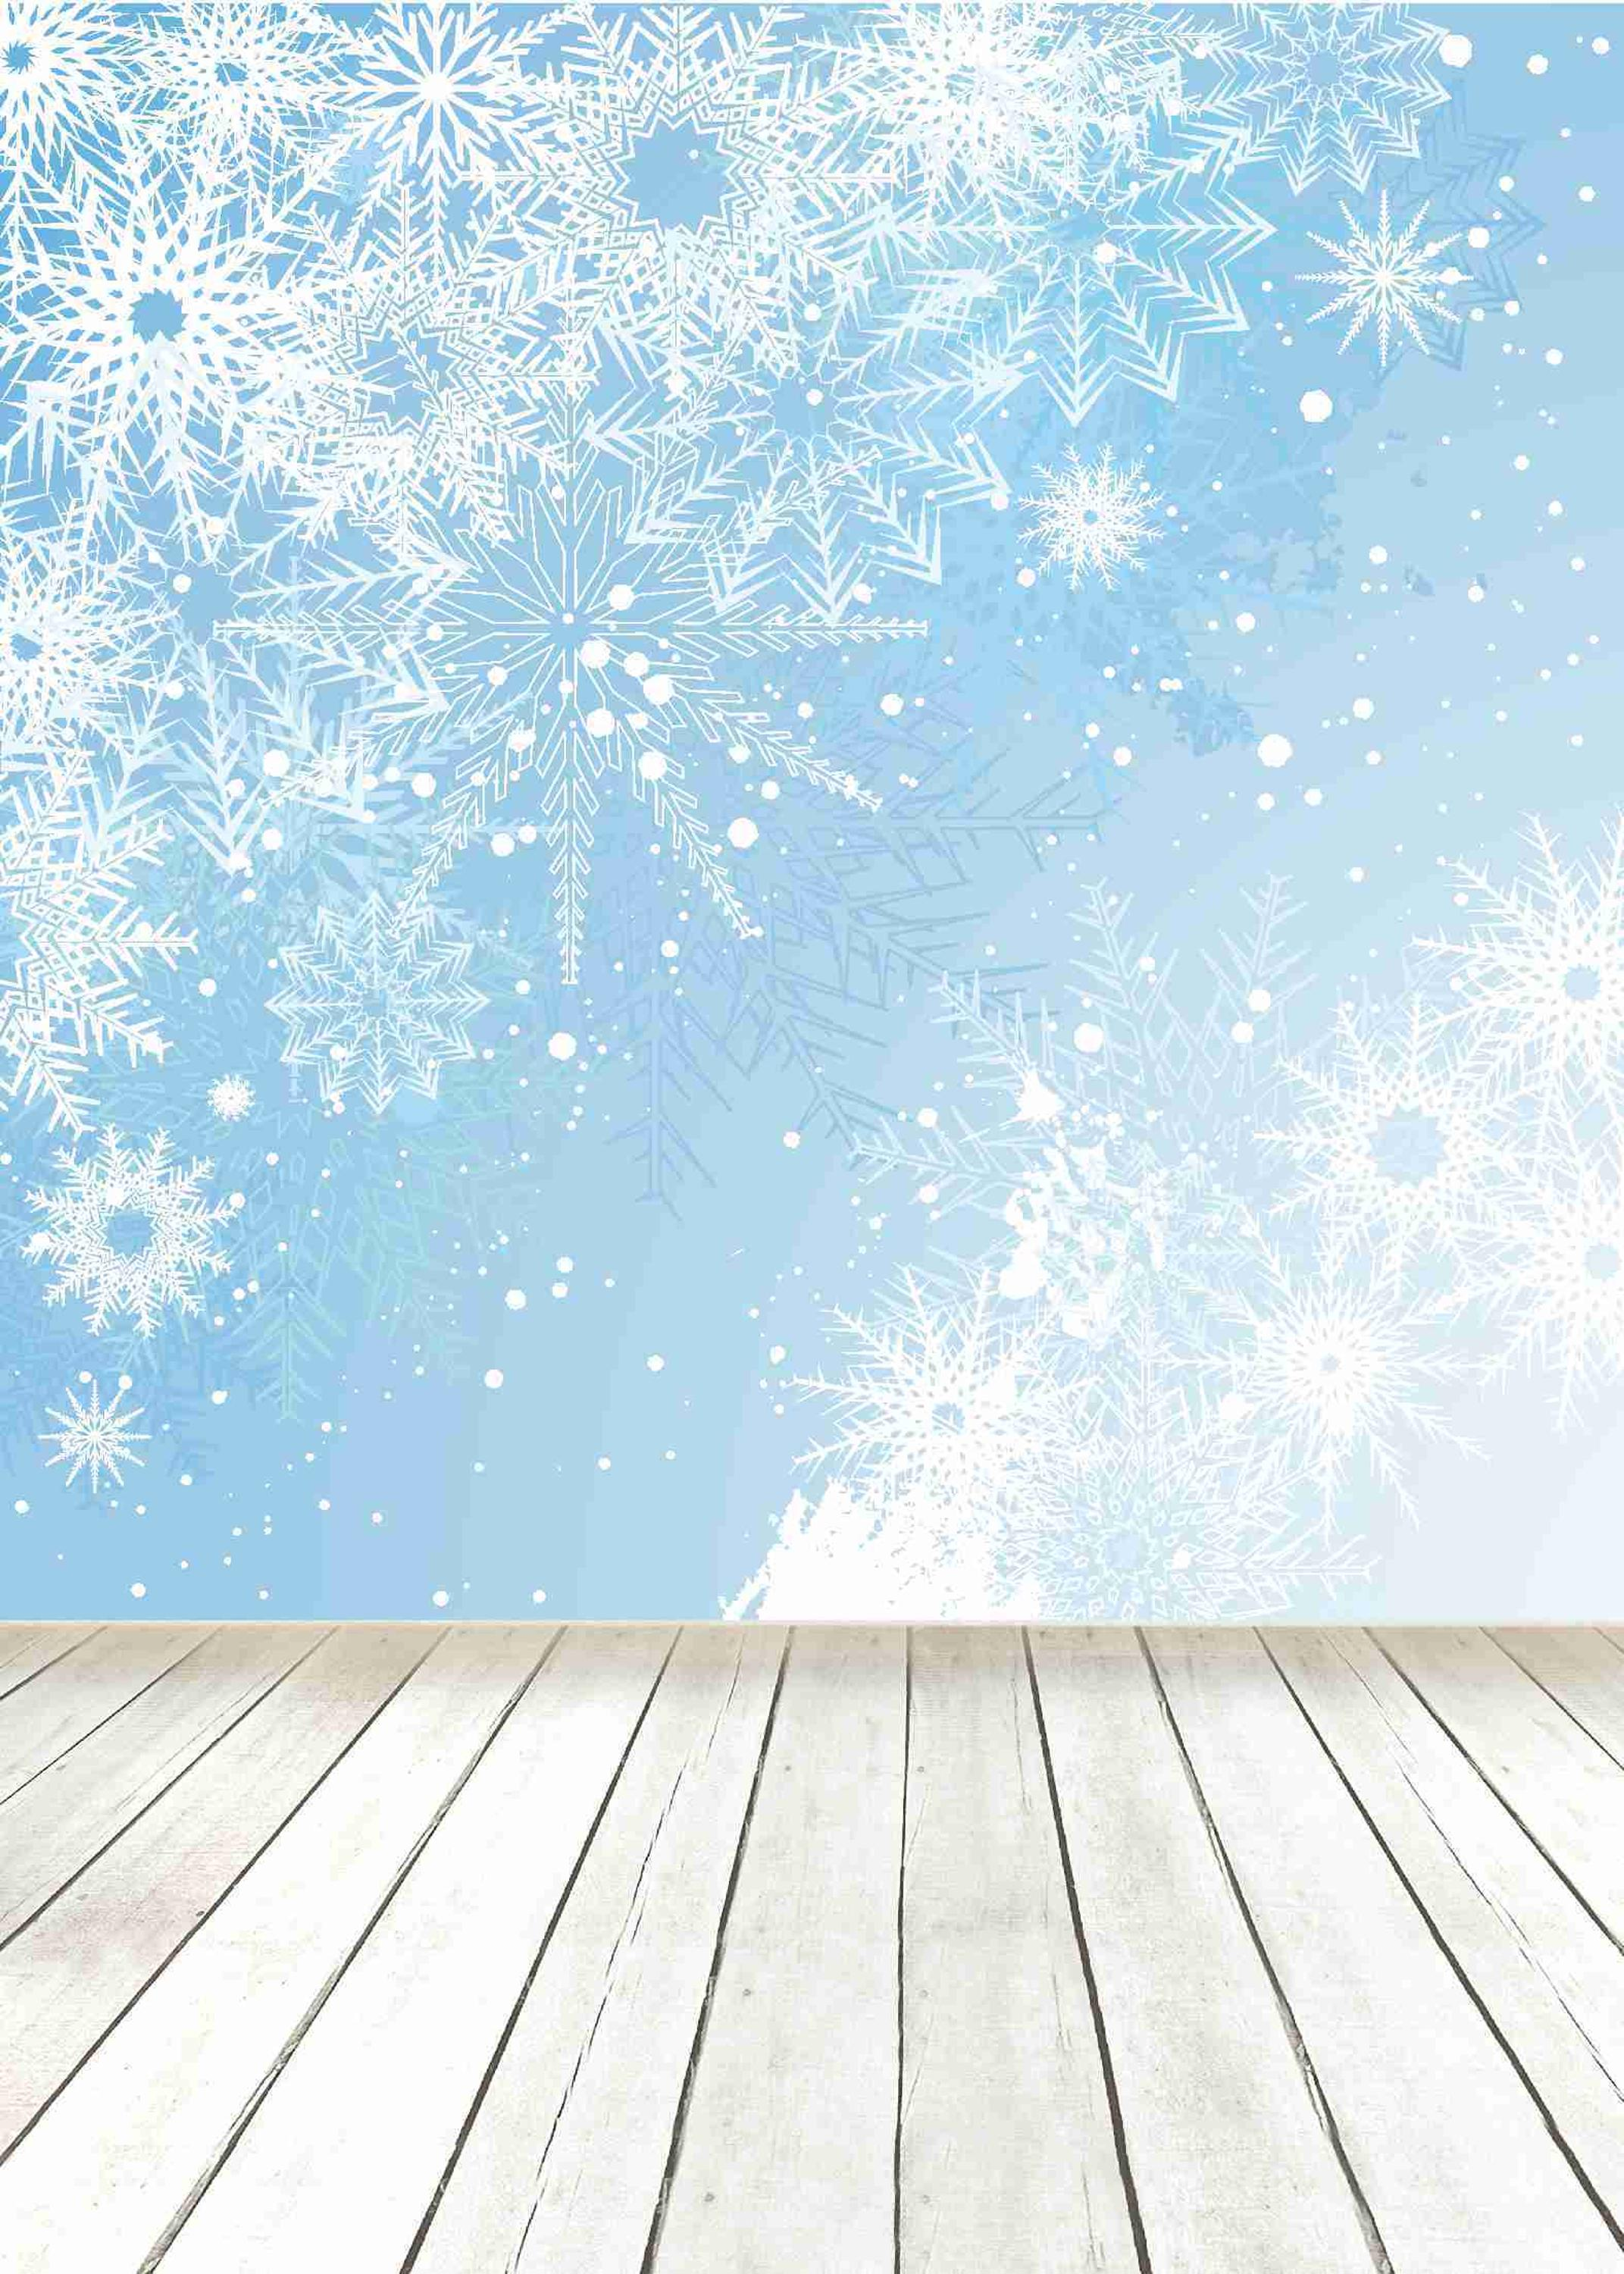 Photo Backdrops Snowflake Wooden Floor Photo Props Photography Background for Studio Vinyl 5x7ft or 3x5ft Jiesdx124 piano backdrops wooden floor wedding stor photo props background vinyl 5x7ft or 3x5ft